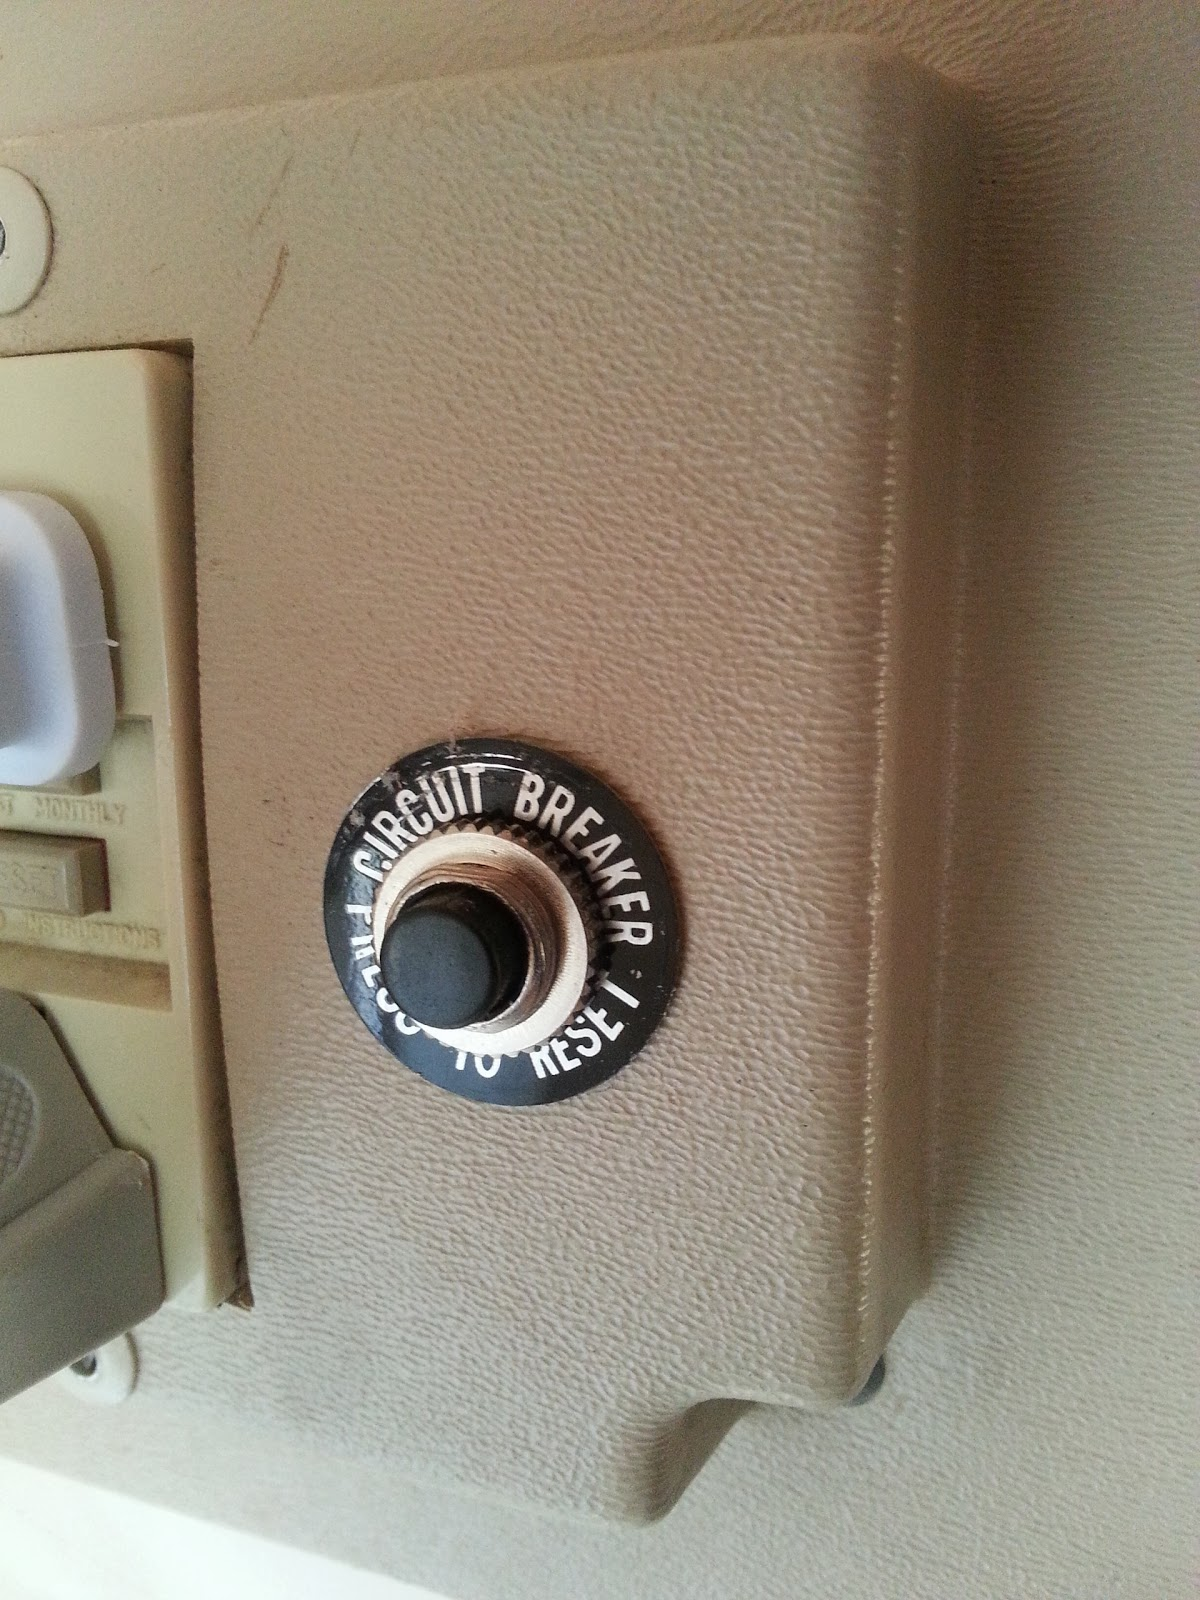 thermal pop-out button circuit breaker on Uhaul CT13 Camper